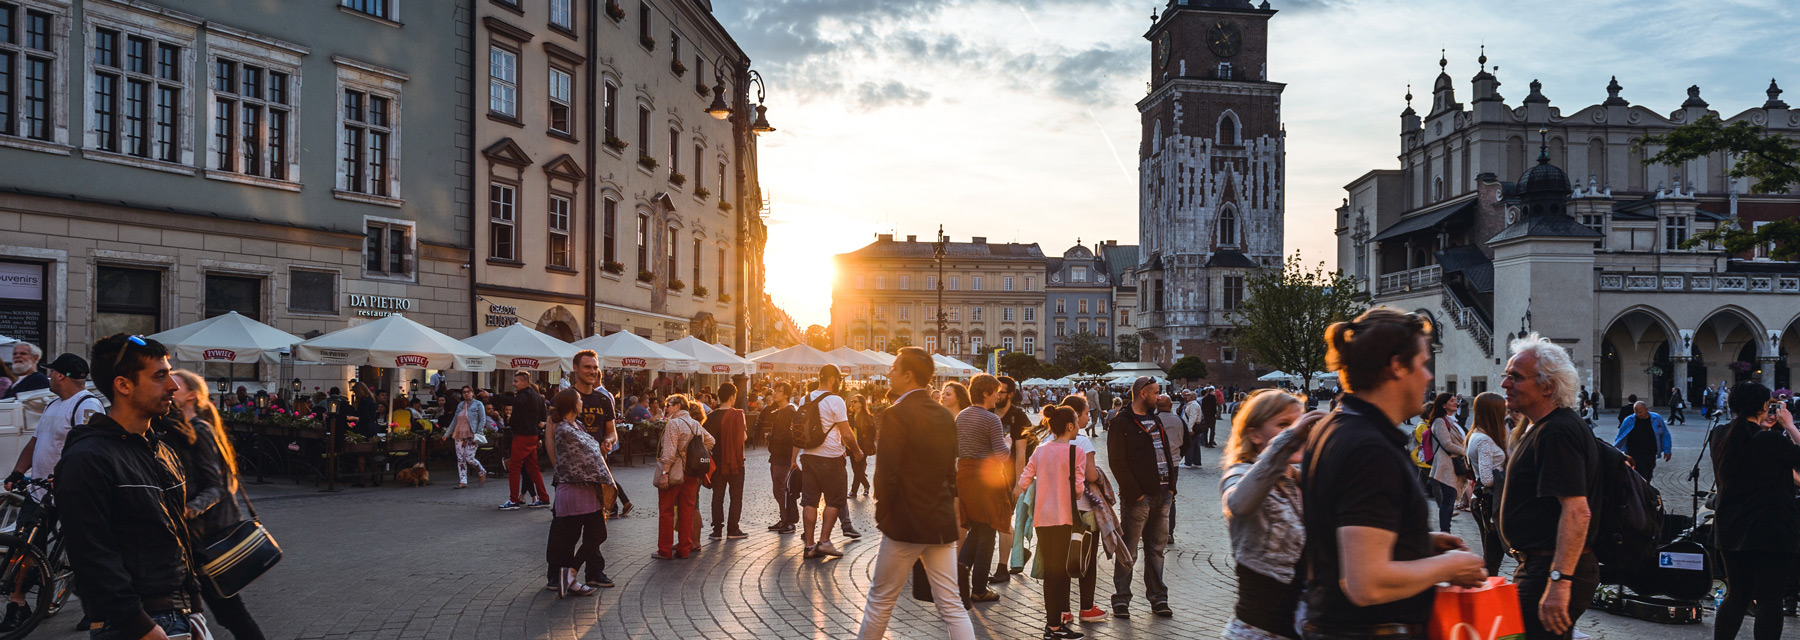 Photo of people in Kraków city centre.